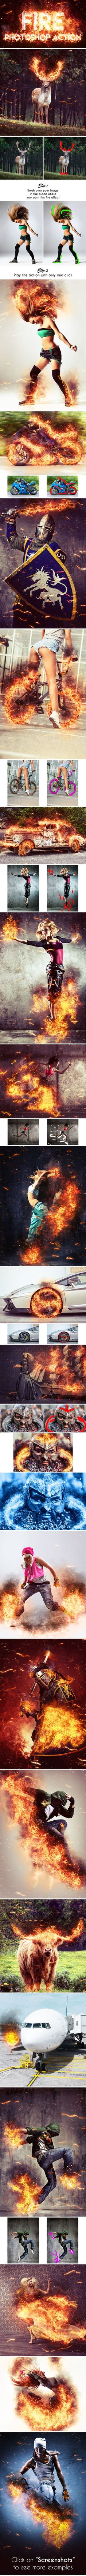 Fire Photoshop Action  #light #burn • Download ➝ https://graphicriver.net/item/fire-photoshop-action/16212593?ref=pxcr